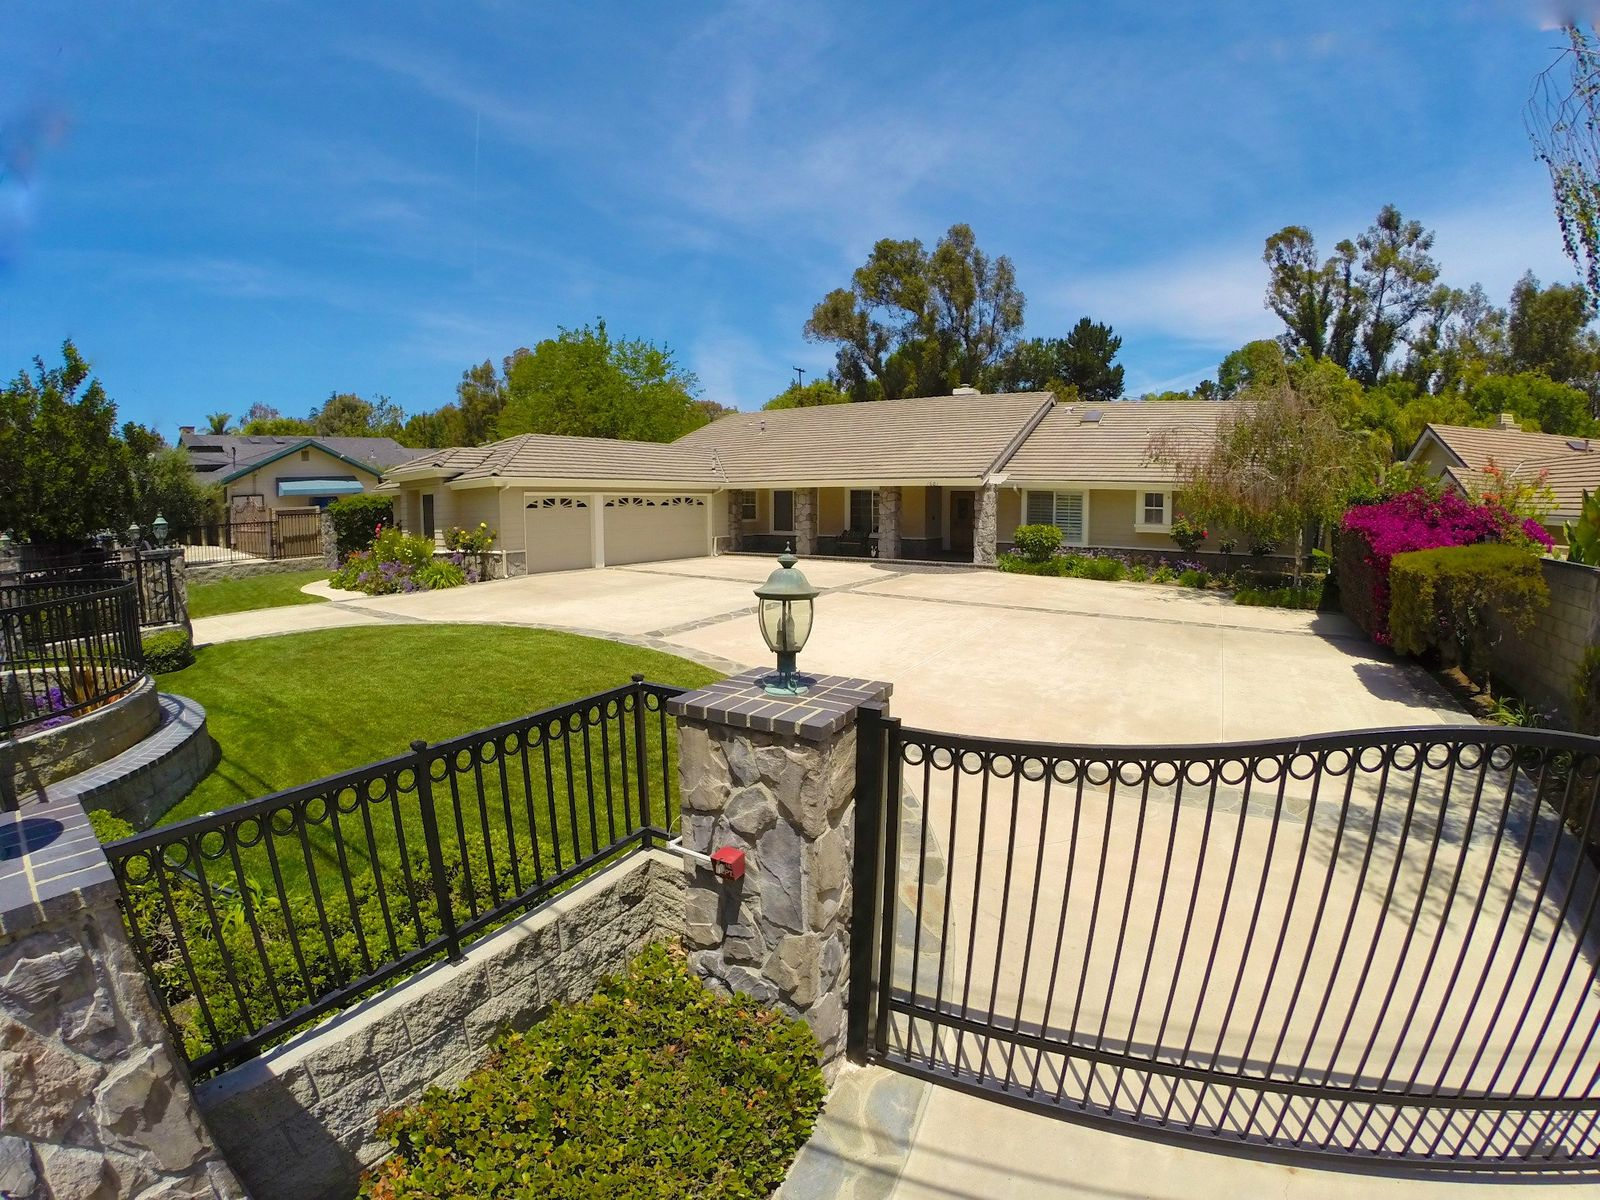 Gated Single Story on Approx. 0.5-Acre, Thousand Oaks CA Single Family Home - Ventura Real Estate